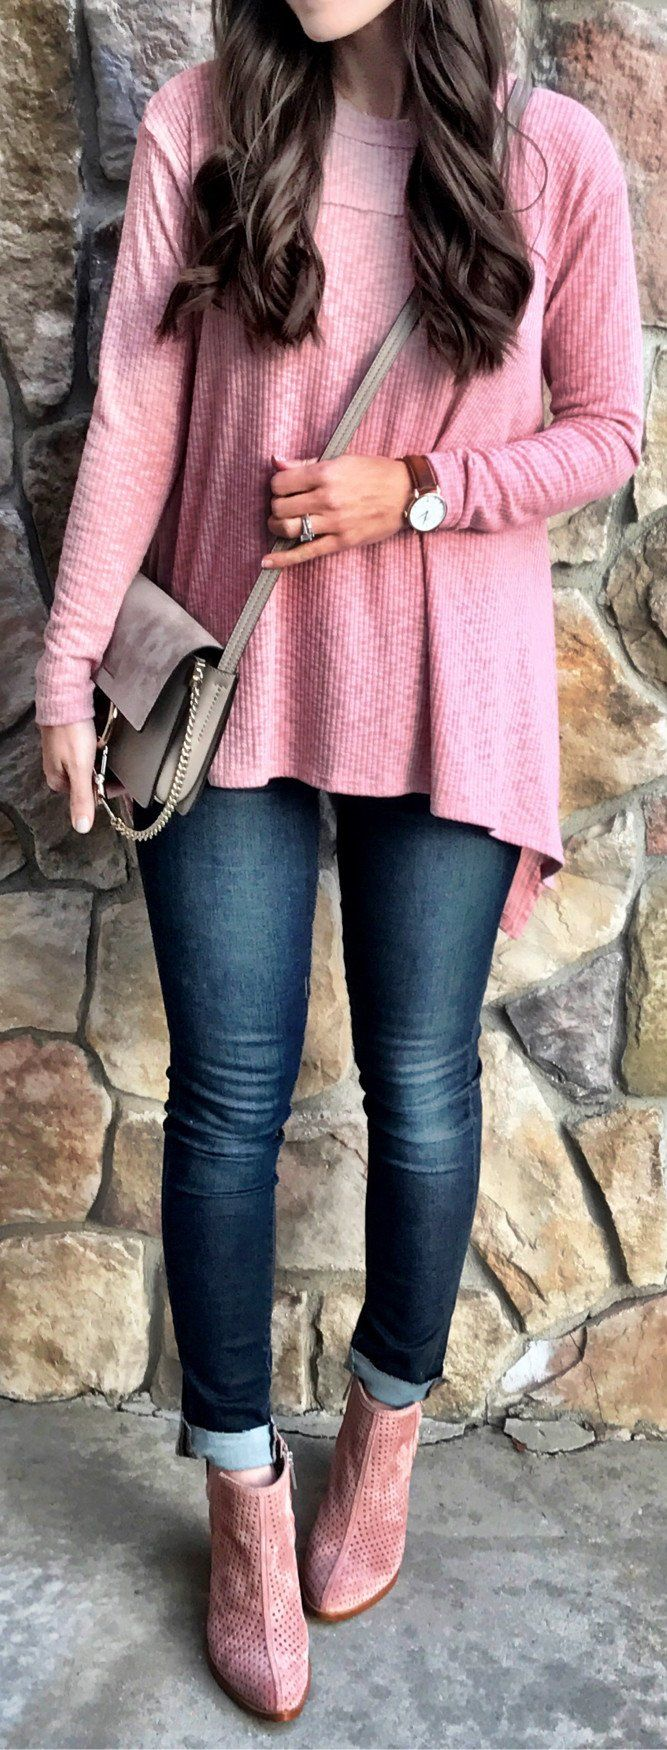 lovely spring outfits /  Pink Knit / Grey Suede Shoulder Bag / Bleached Skinny Jeans / Pink Suede Booties